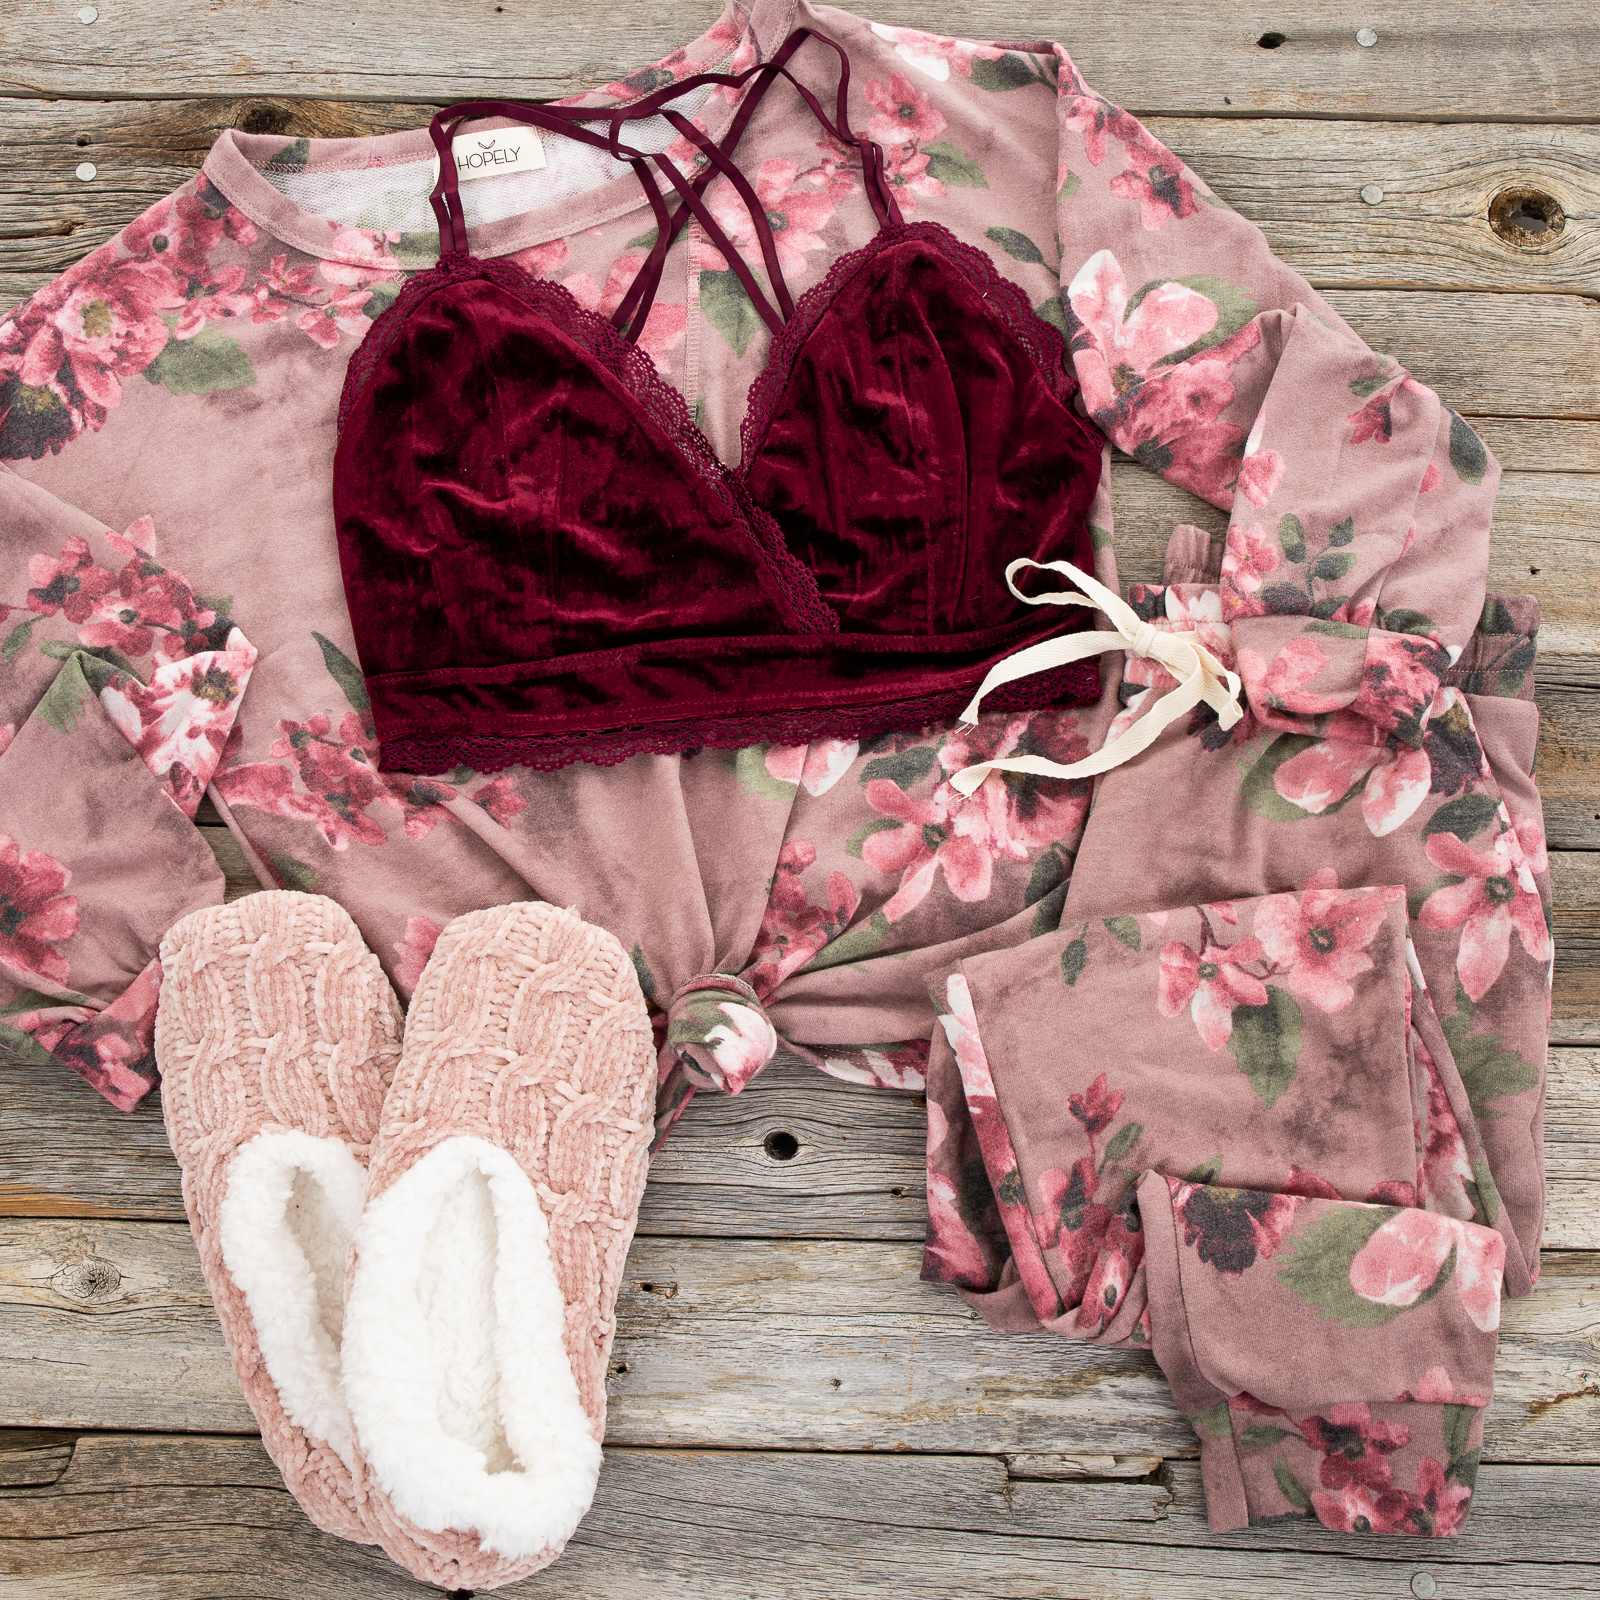 Deep Maroon Velvet and Lace Bralette with Criss Cross Straps